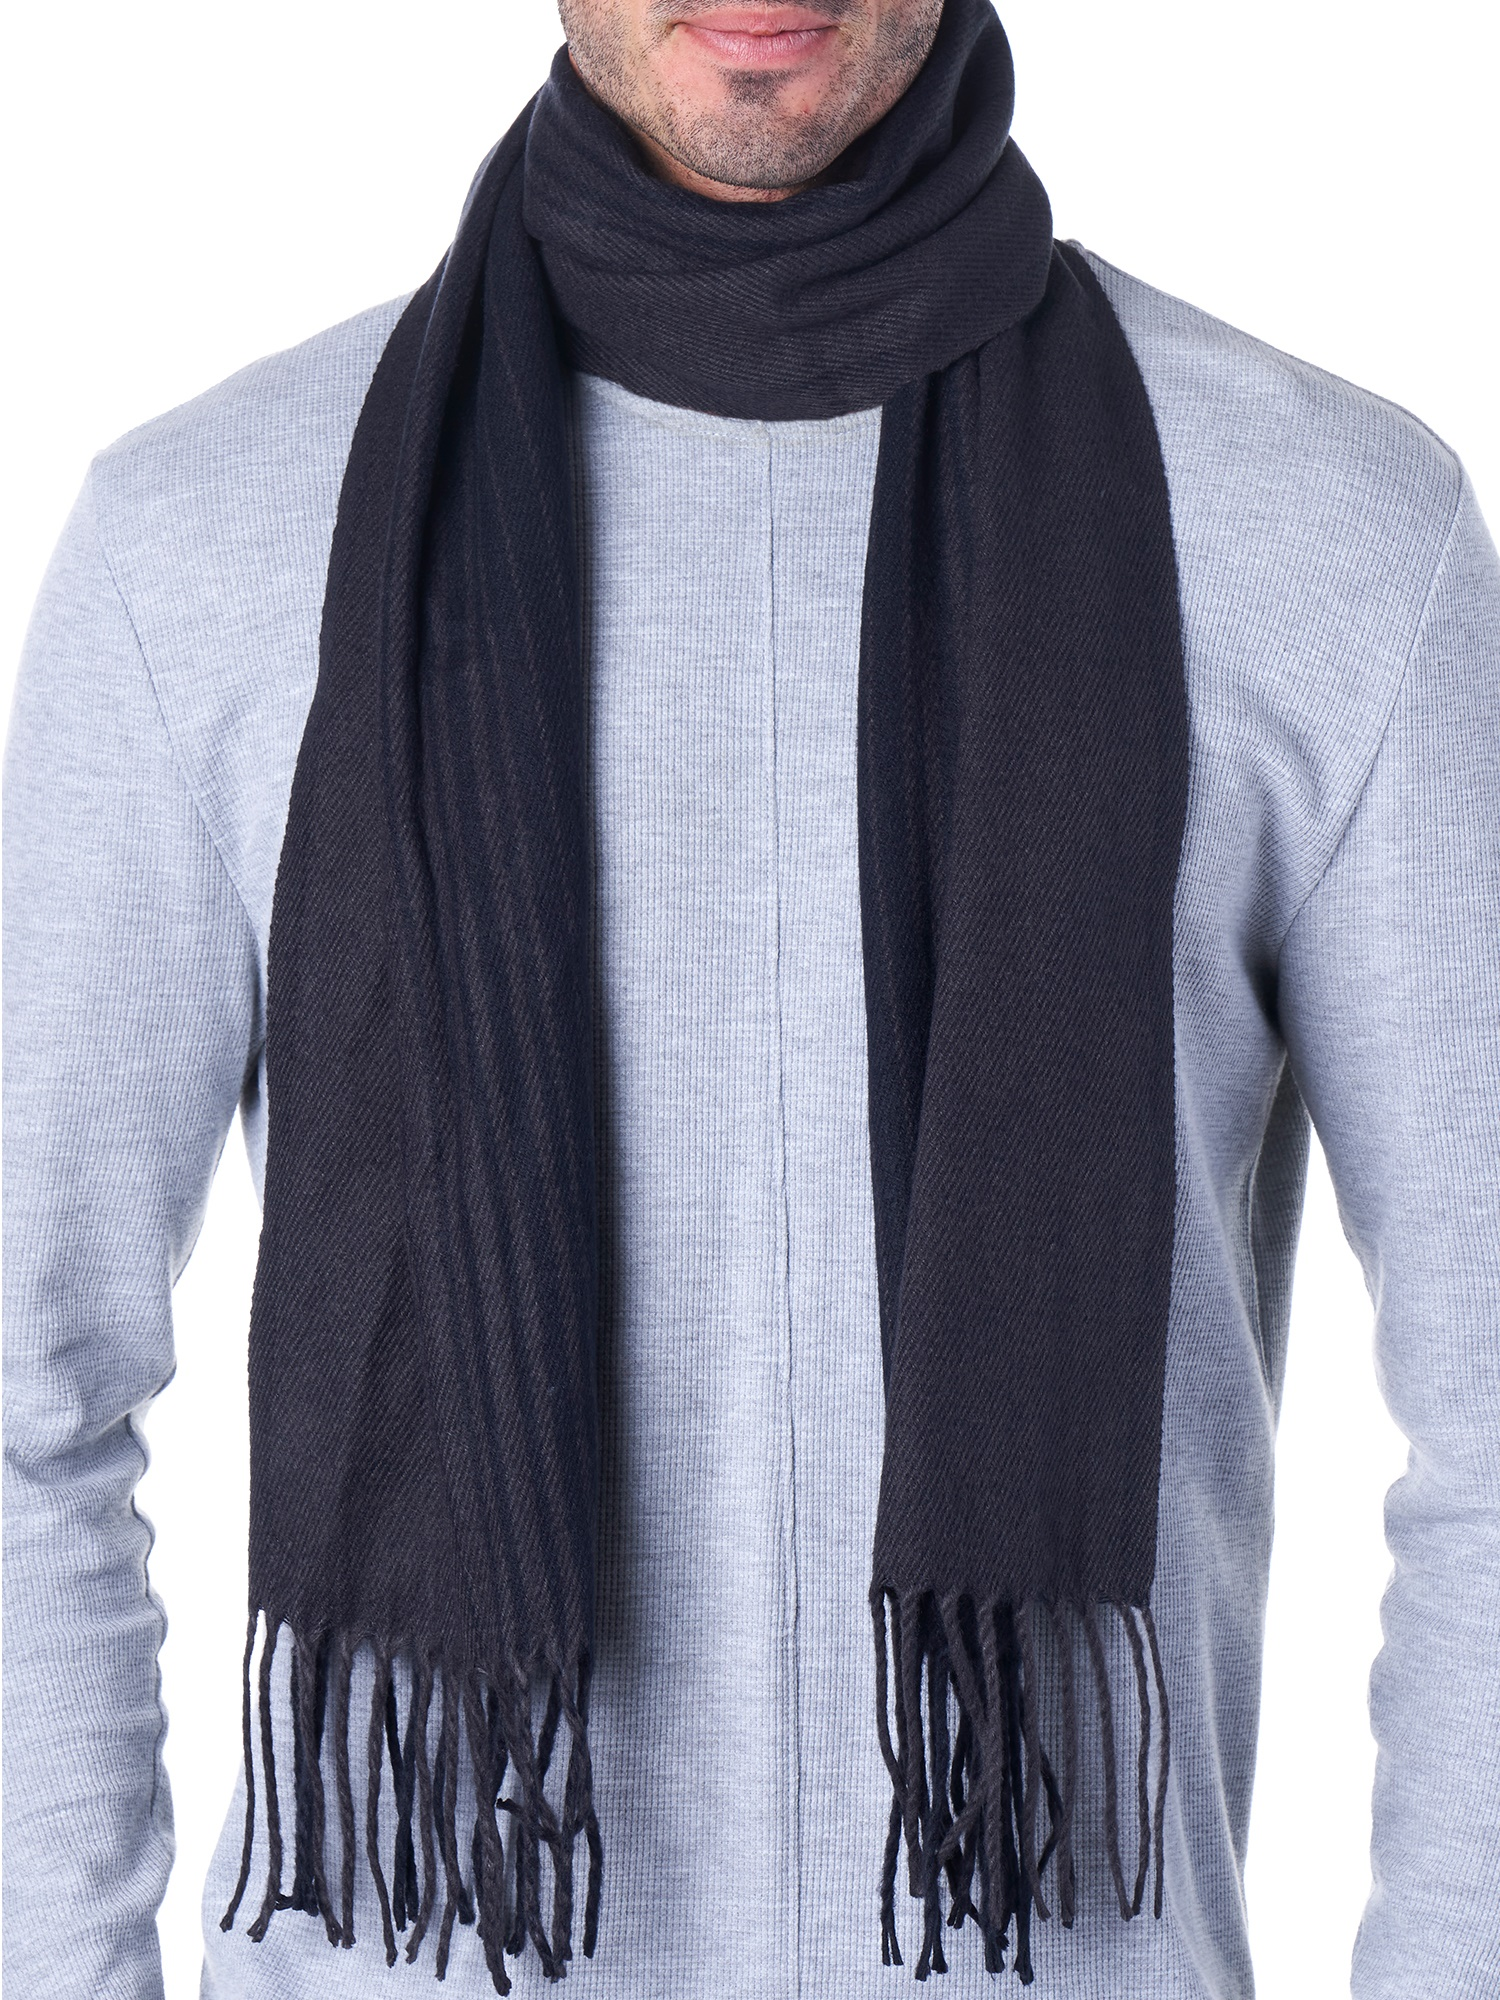 Hammer-Anvil-Mens-Plaid-Striped-Scarf-Womens-Winter-Scarves-Cashmere-Soft-Feel thumbnail 18